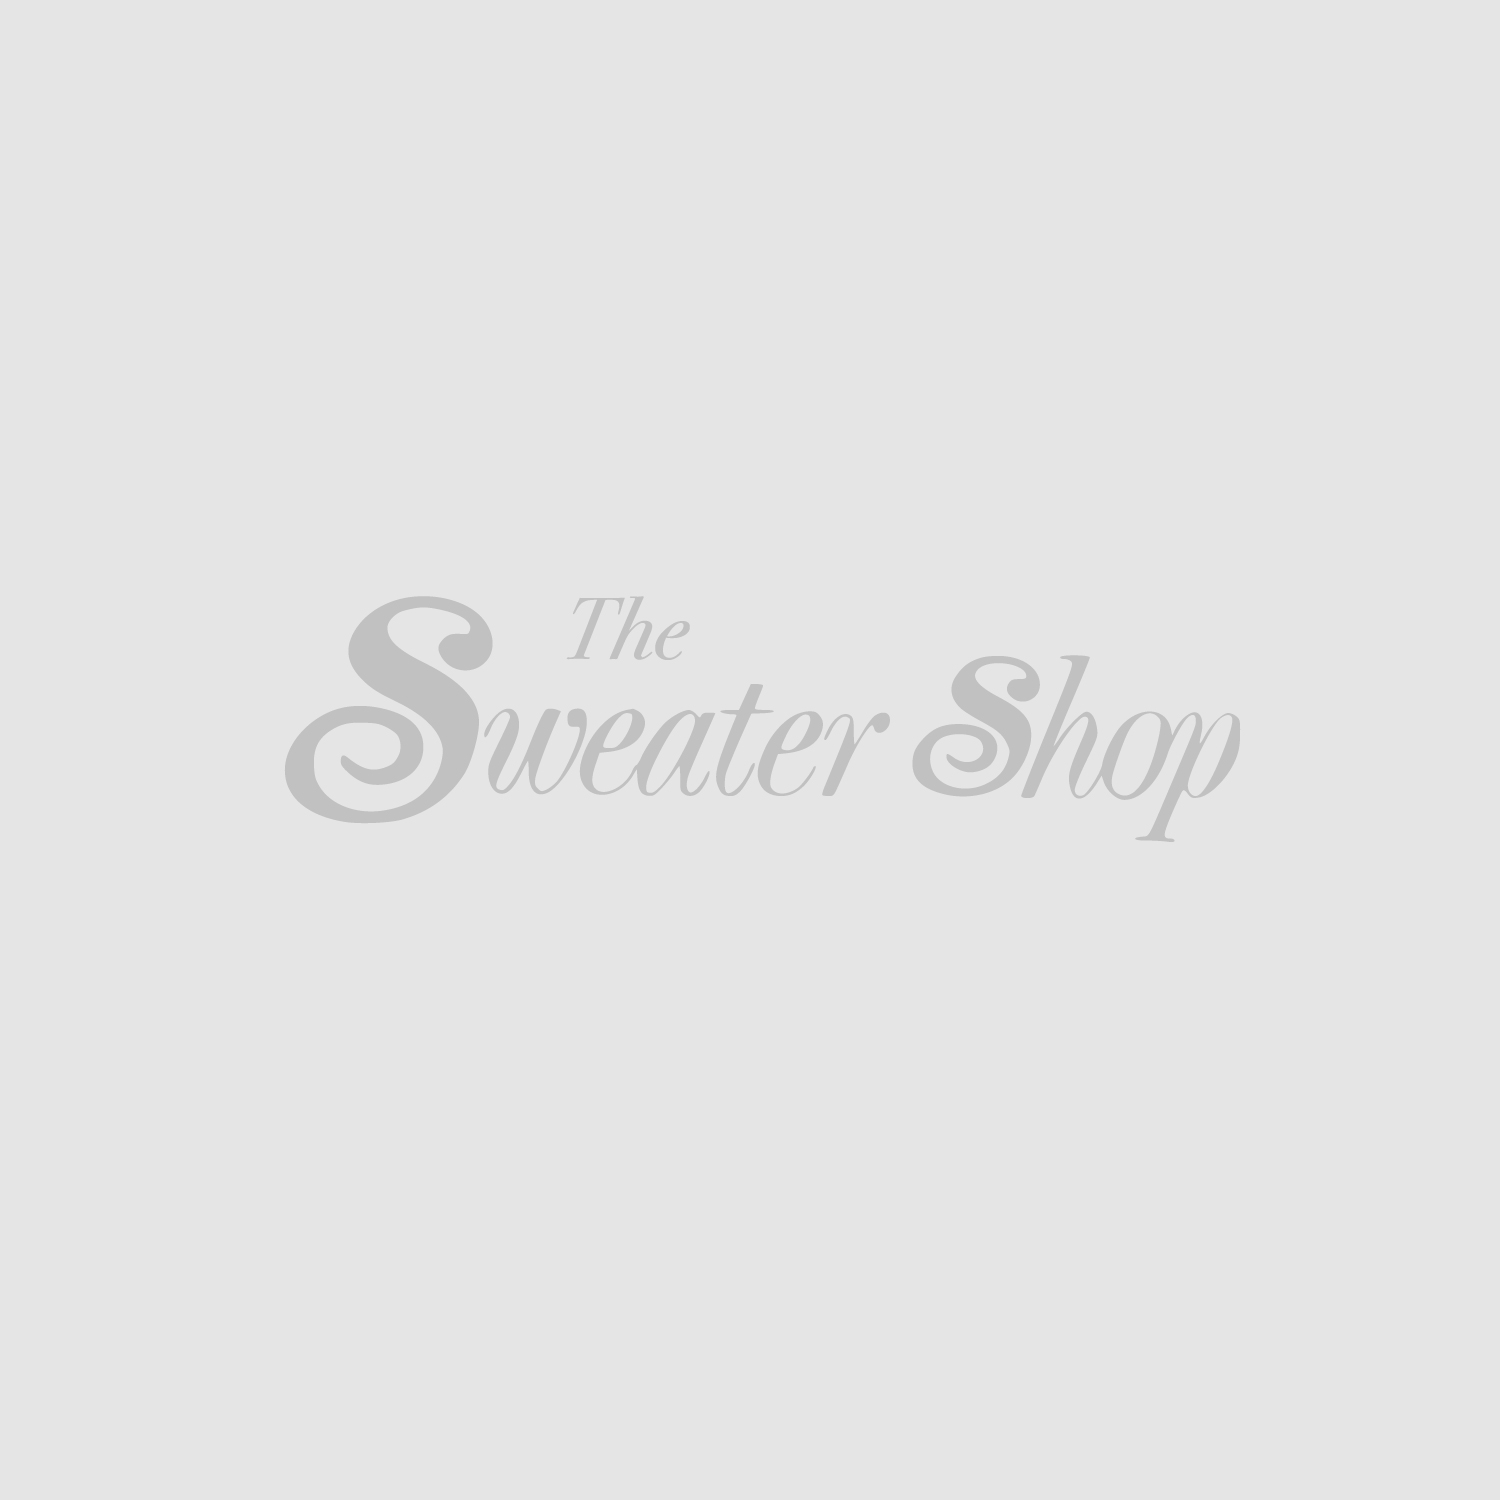 Silver Summer Irish Cotton Wrap | The Sweater Shop, Ireland